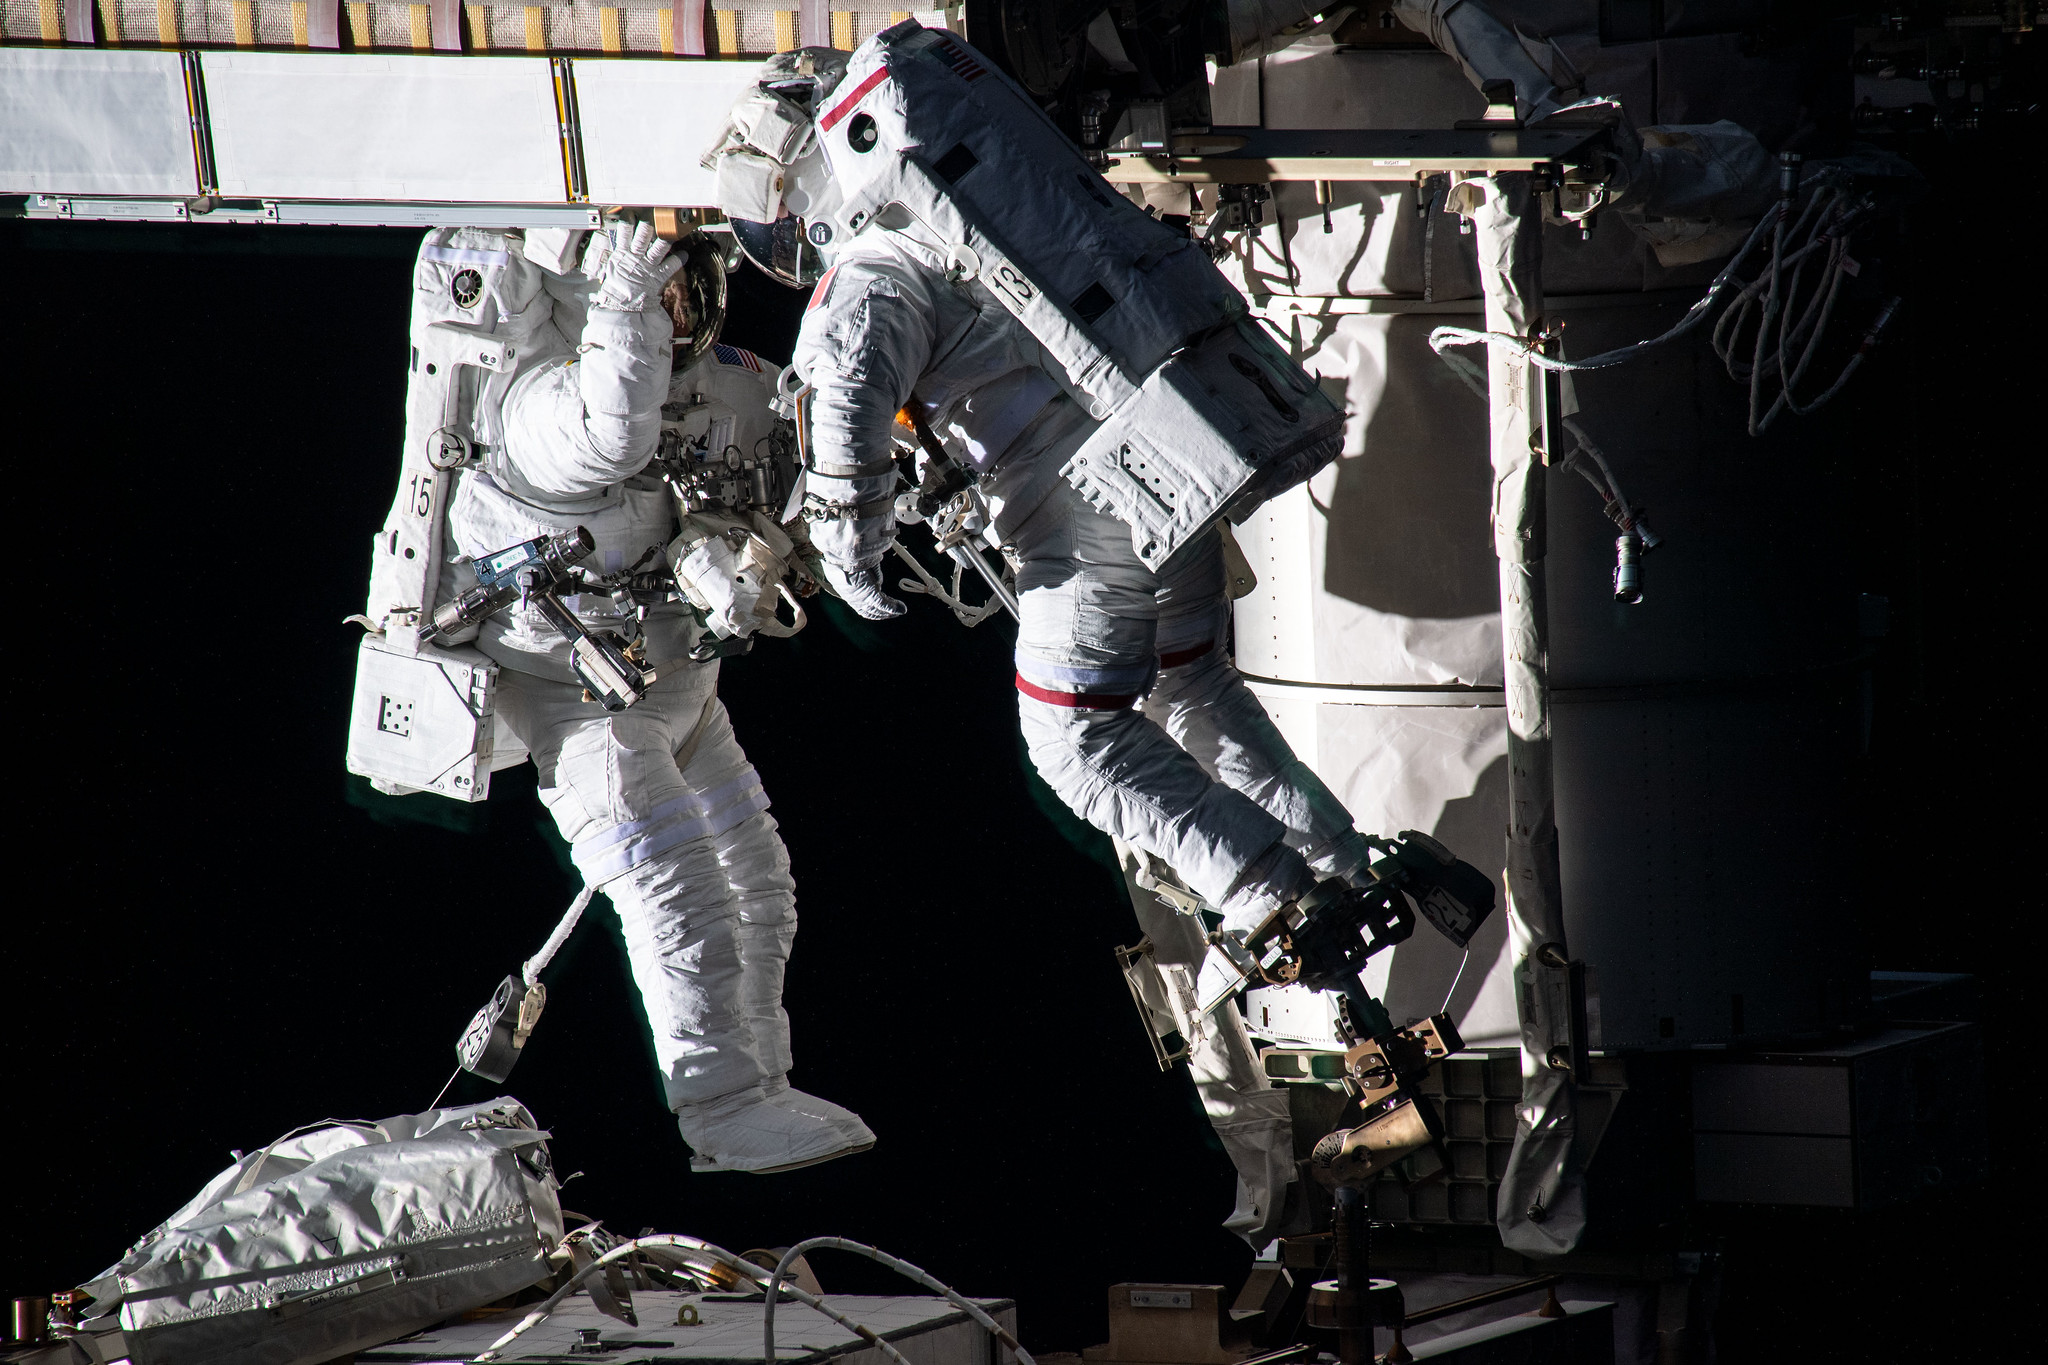 Spacewalkers (from left) Shane Kimbrough and Thomas Pesquet work to install new roll out solar arrays on the International Space Station's P-6 truss structure on June 16, 2021.